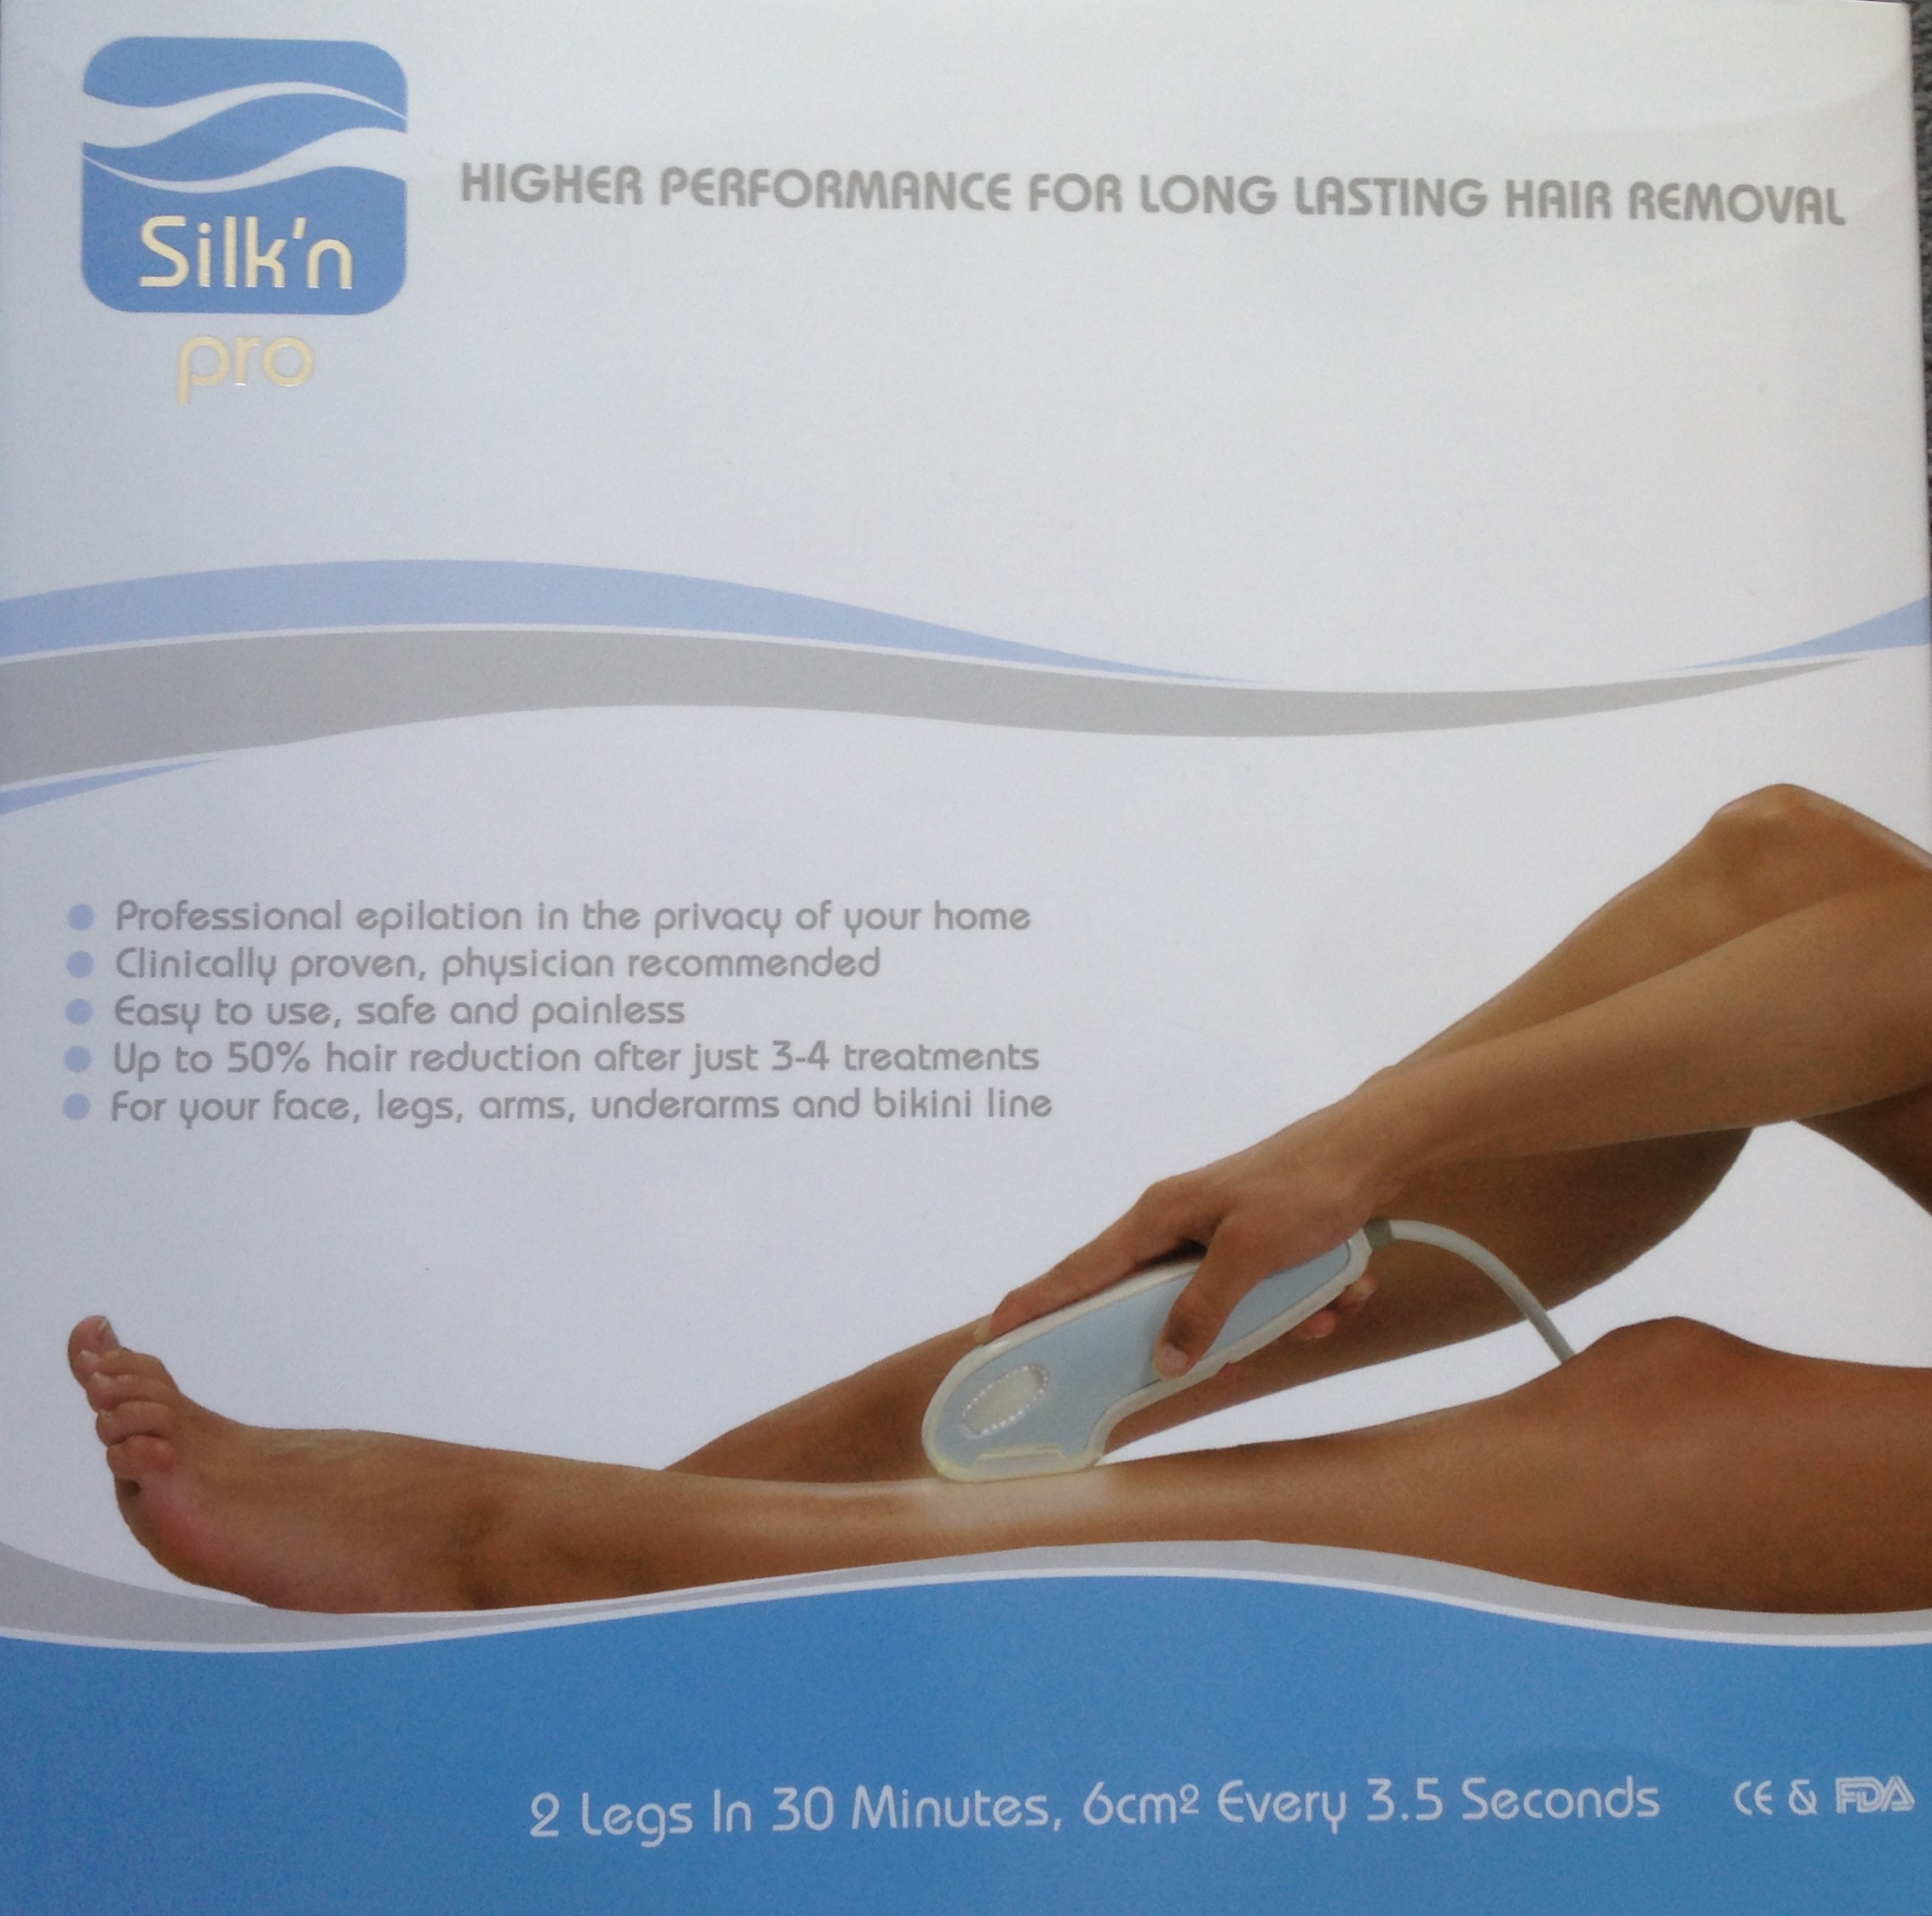 First impressions Silk'n Review- silky smooth legs for the